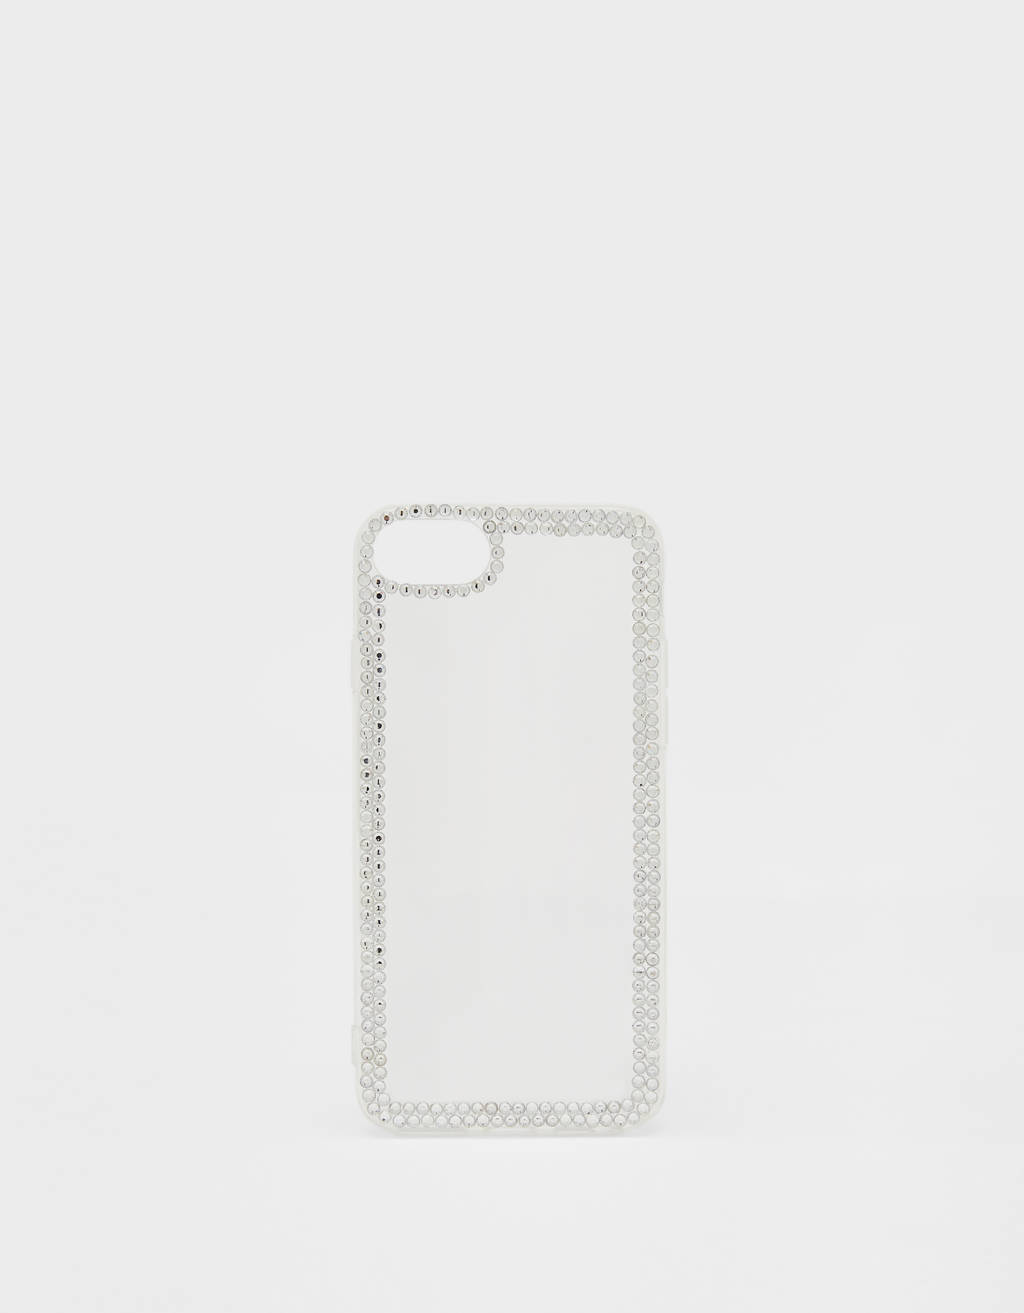 Sparkly iPhone 6 / 7 / 8 case